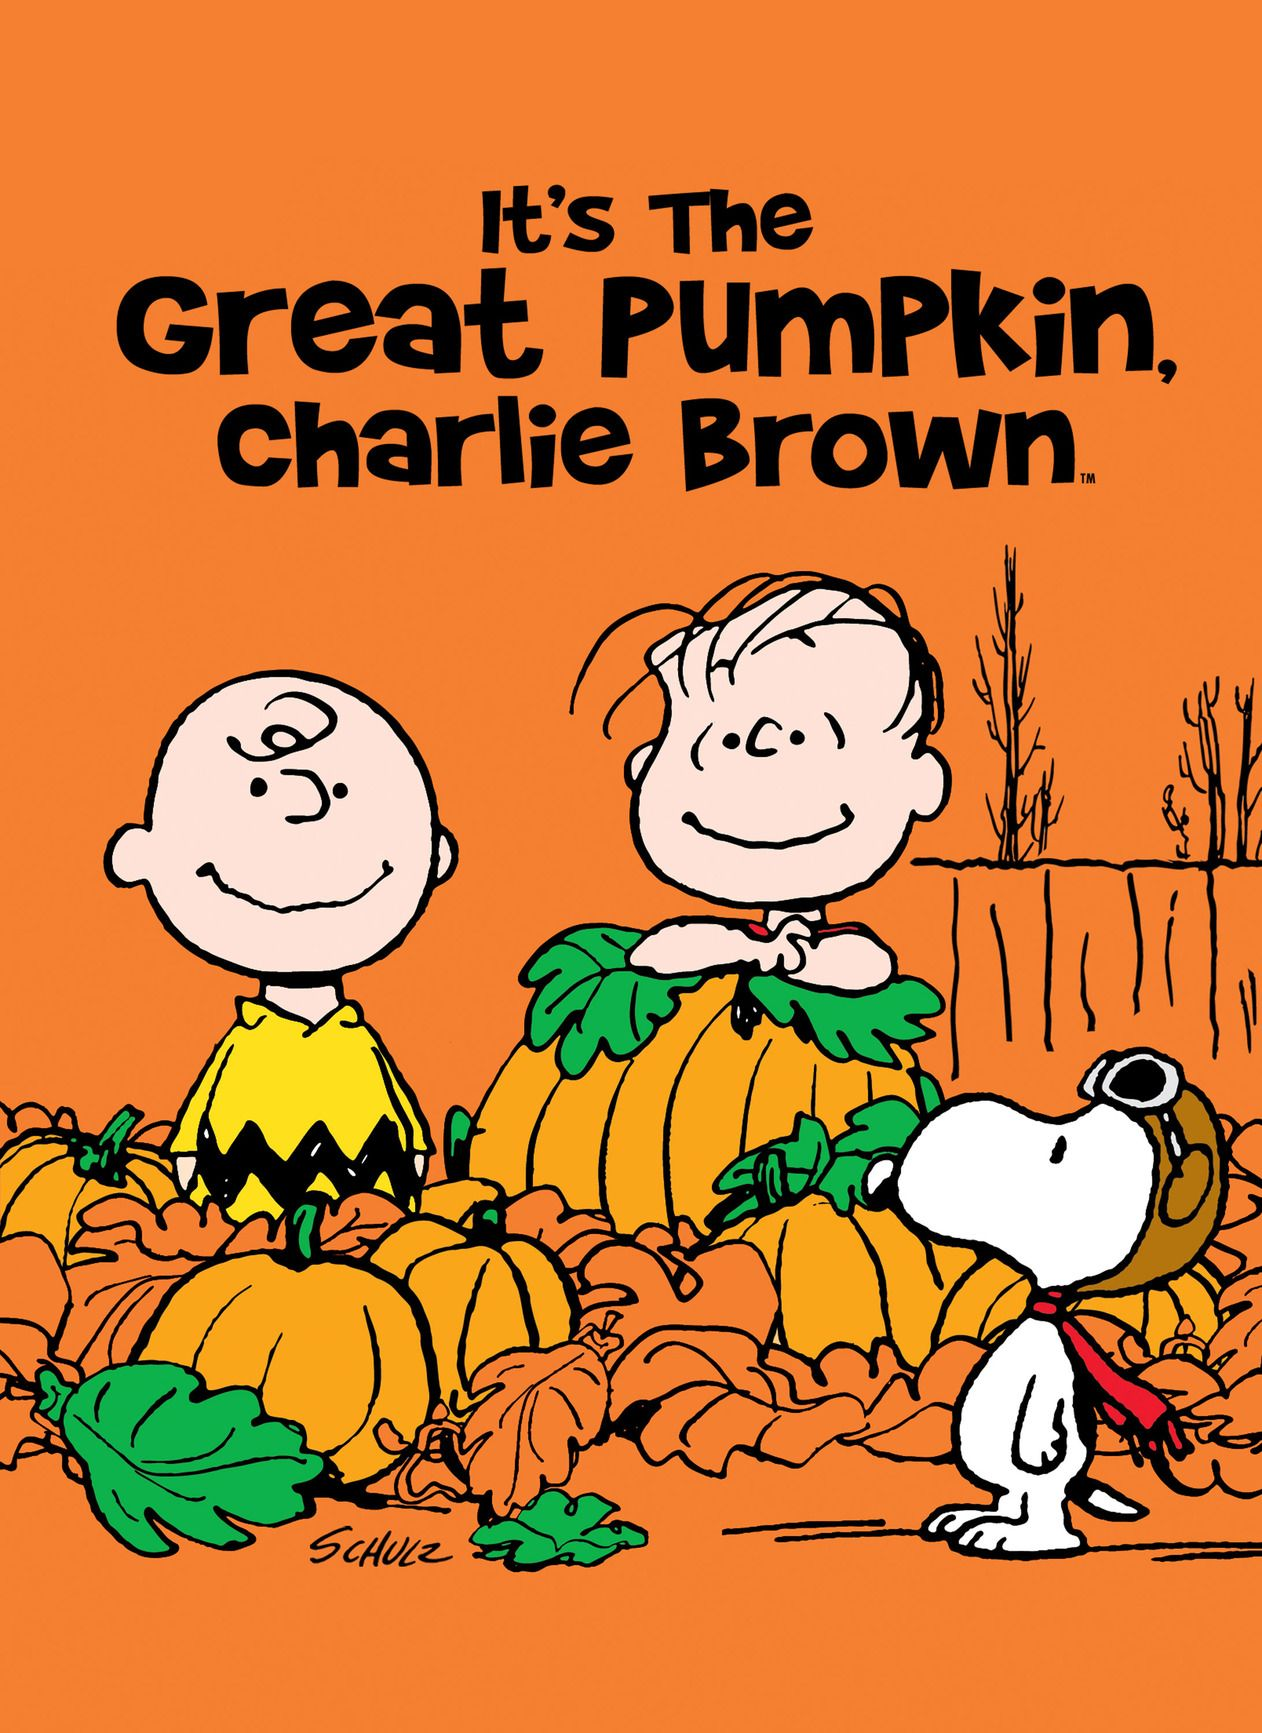 fall movies - it's the great pumpkin charlie brown